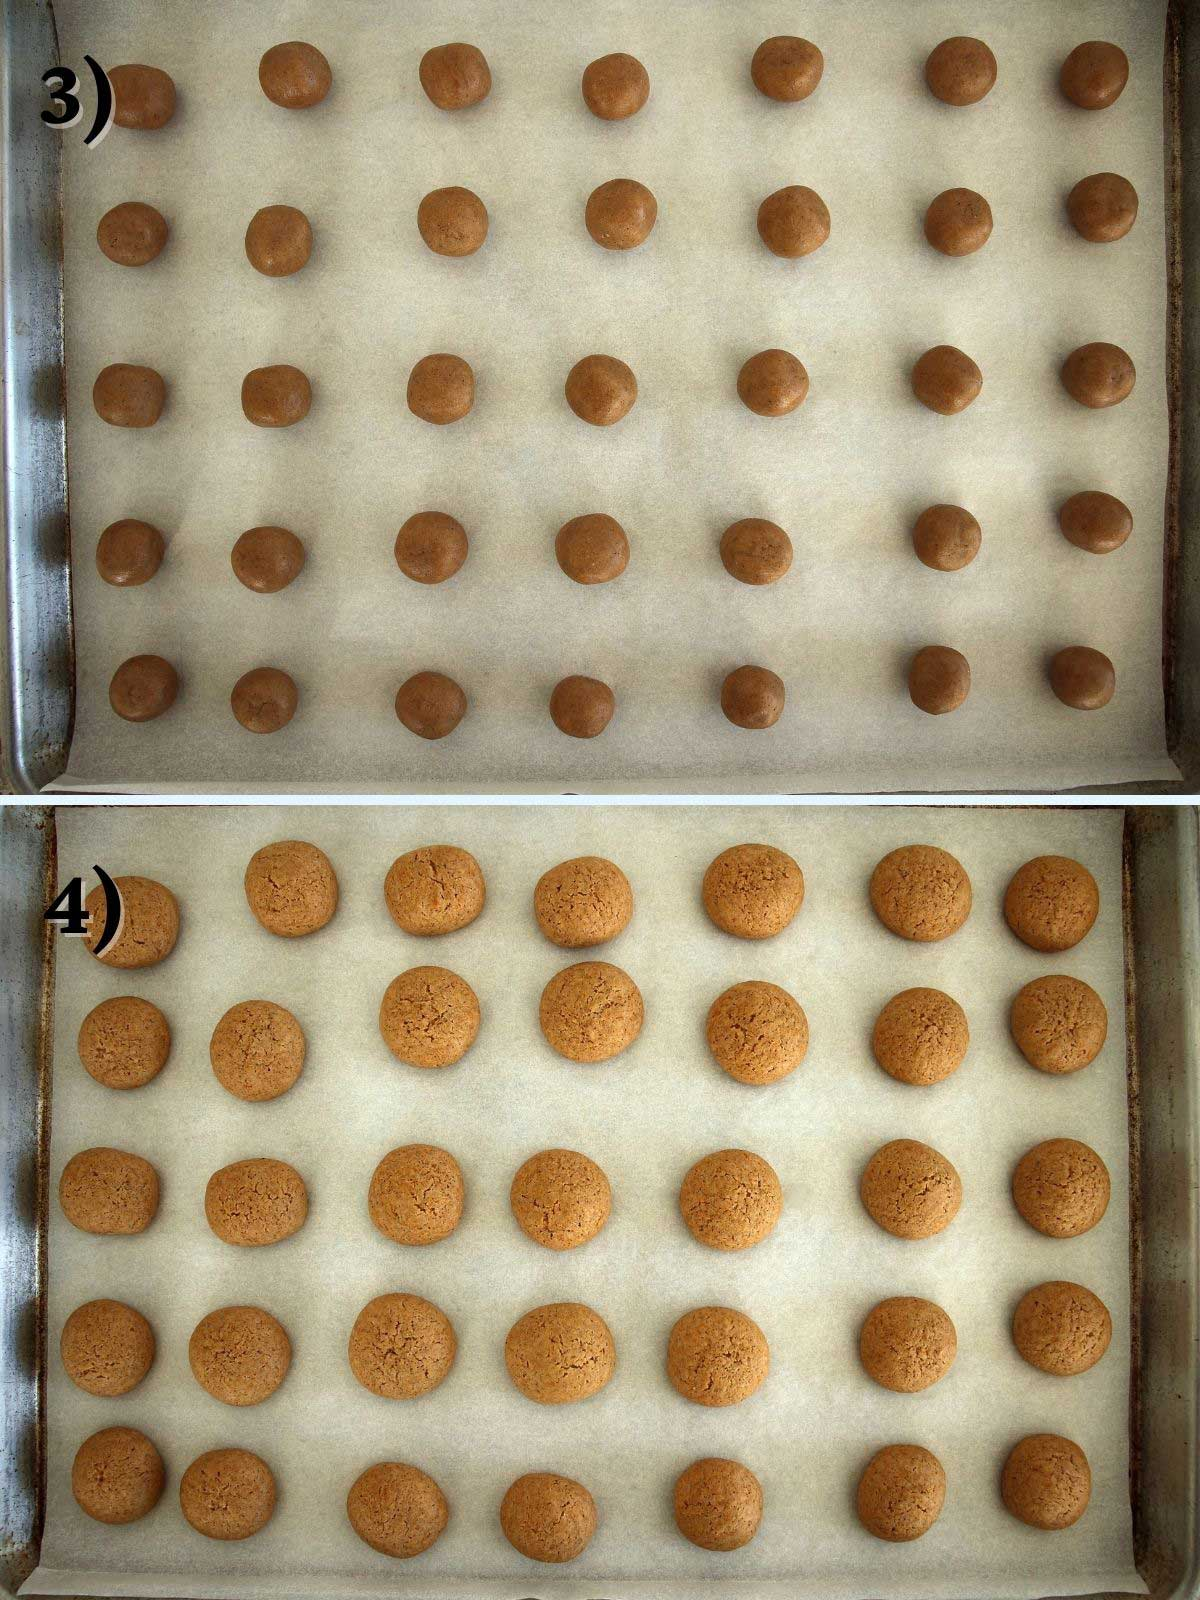 A baking sheet of German spice cookies before and after baking.